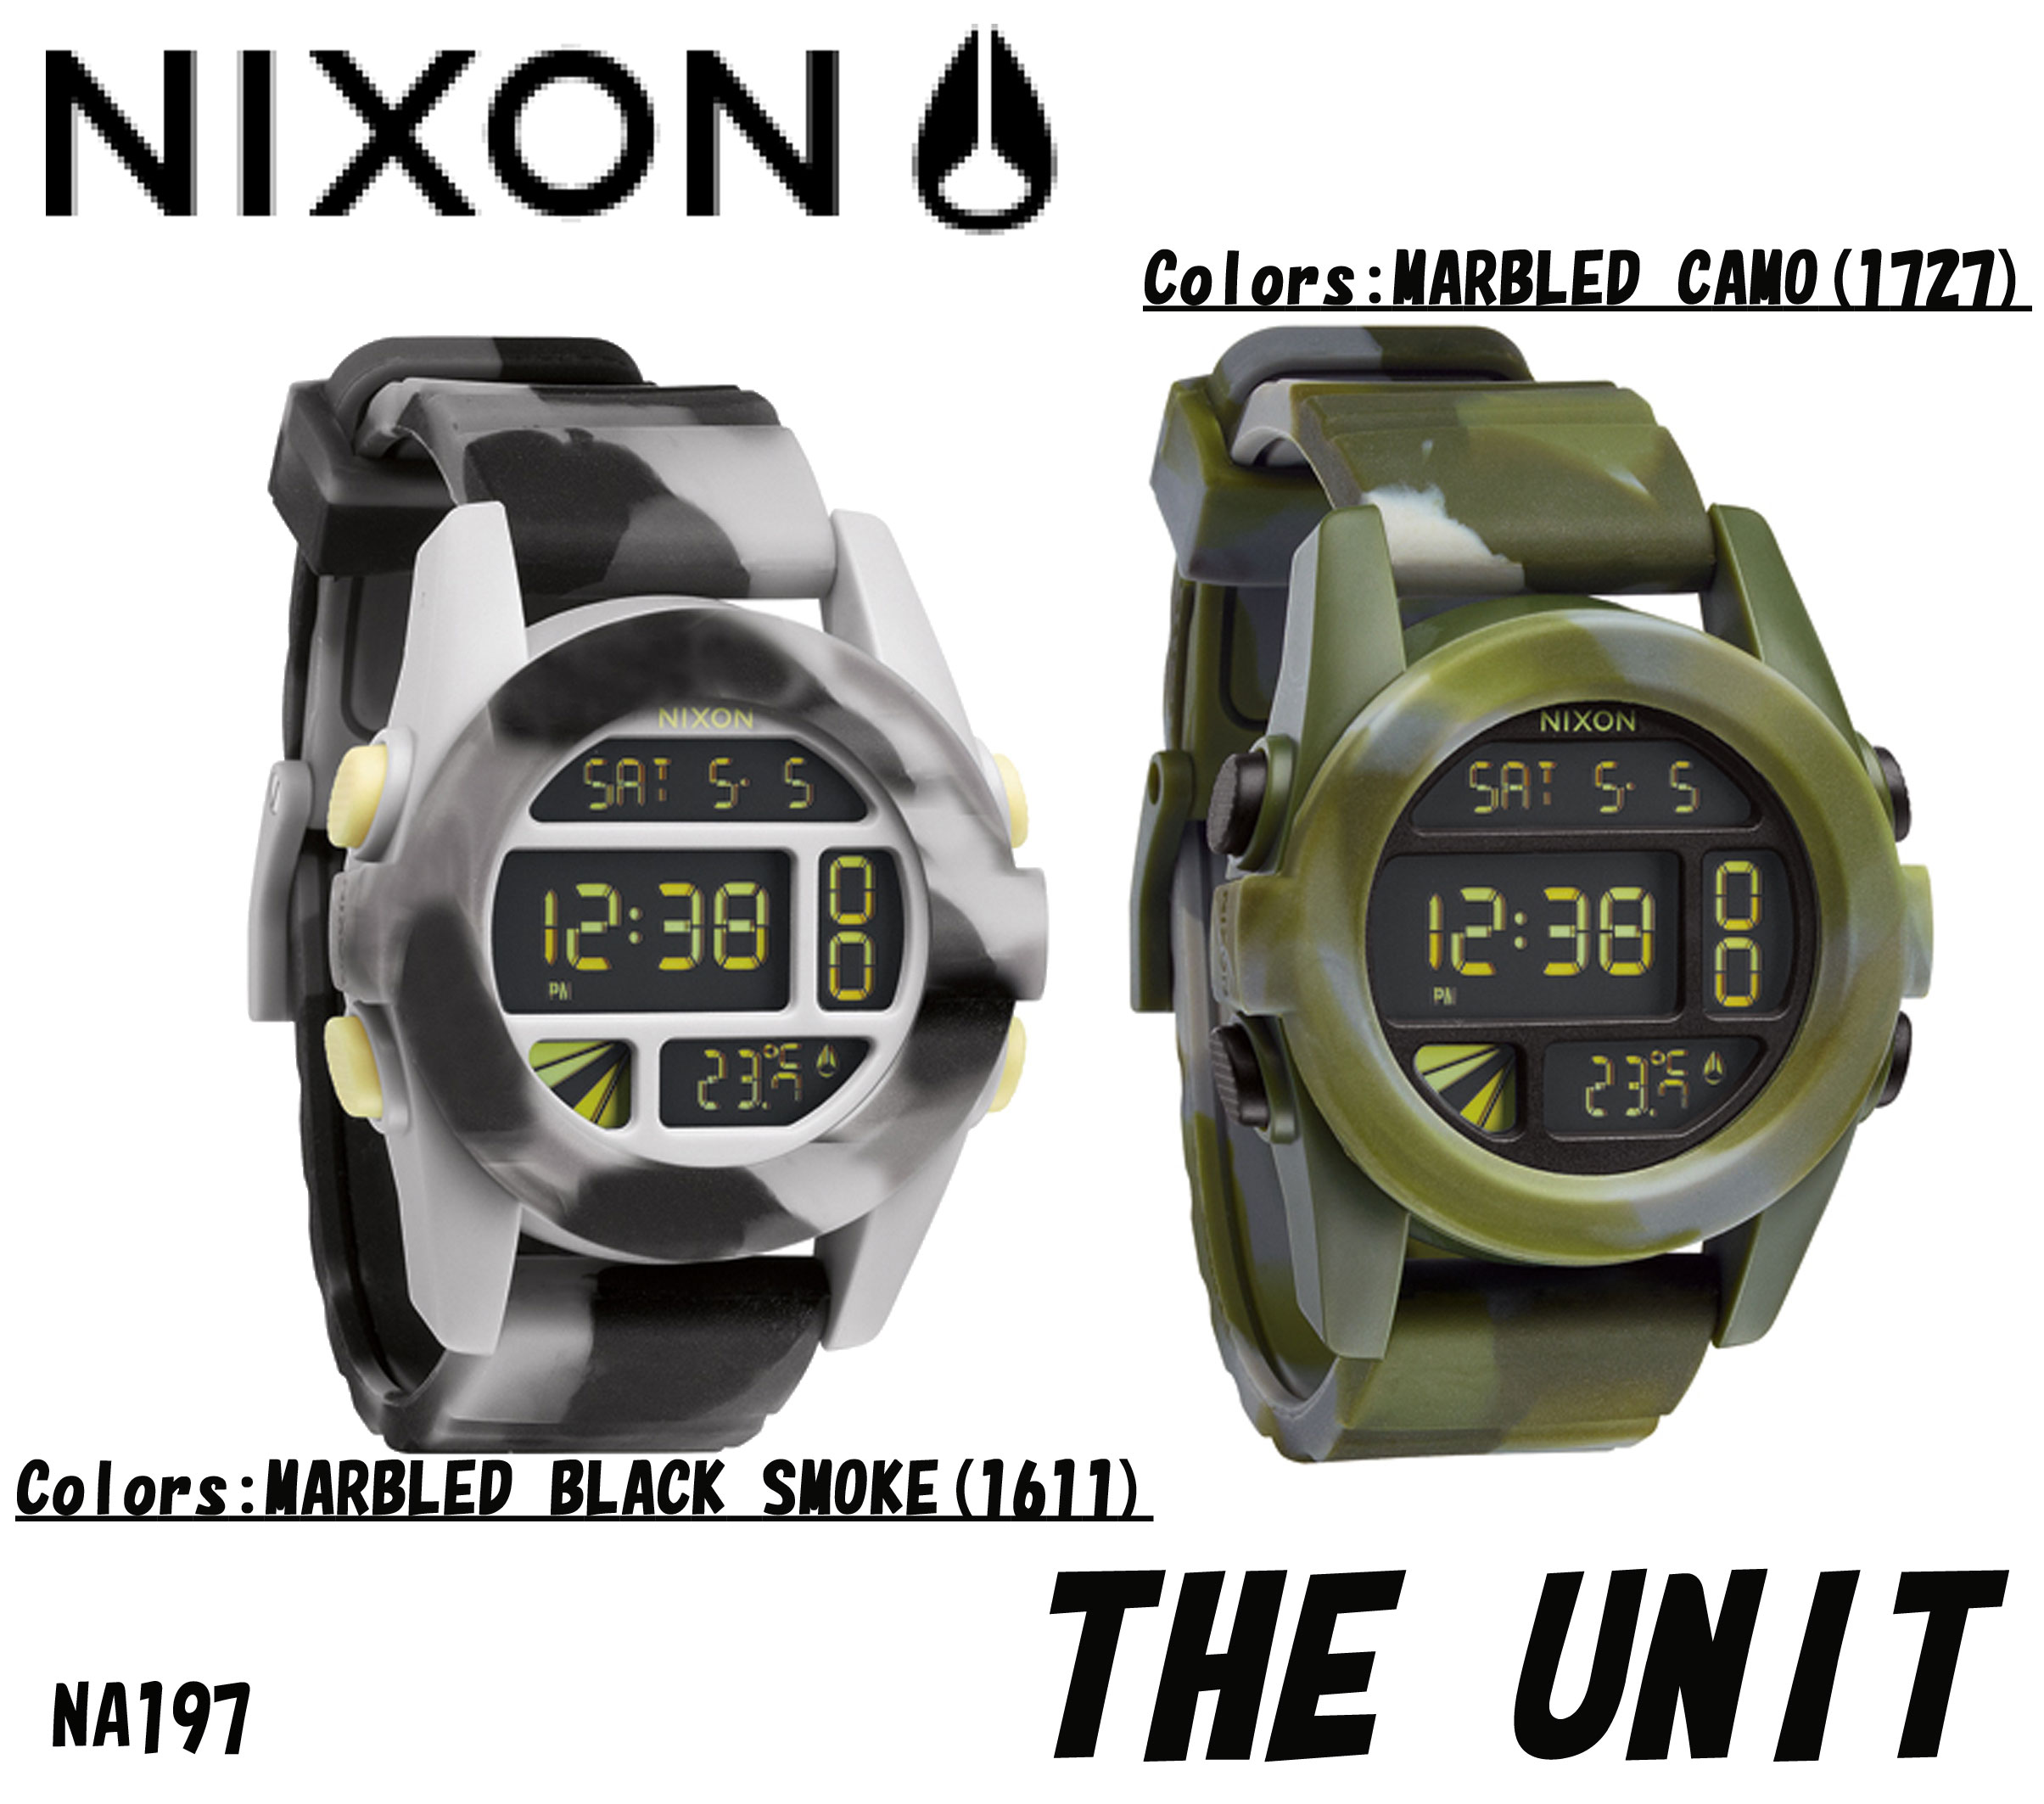 nixon_watch_unit_mein1